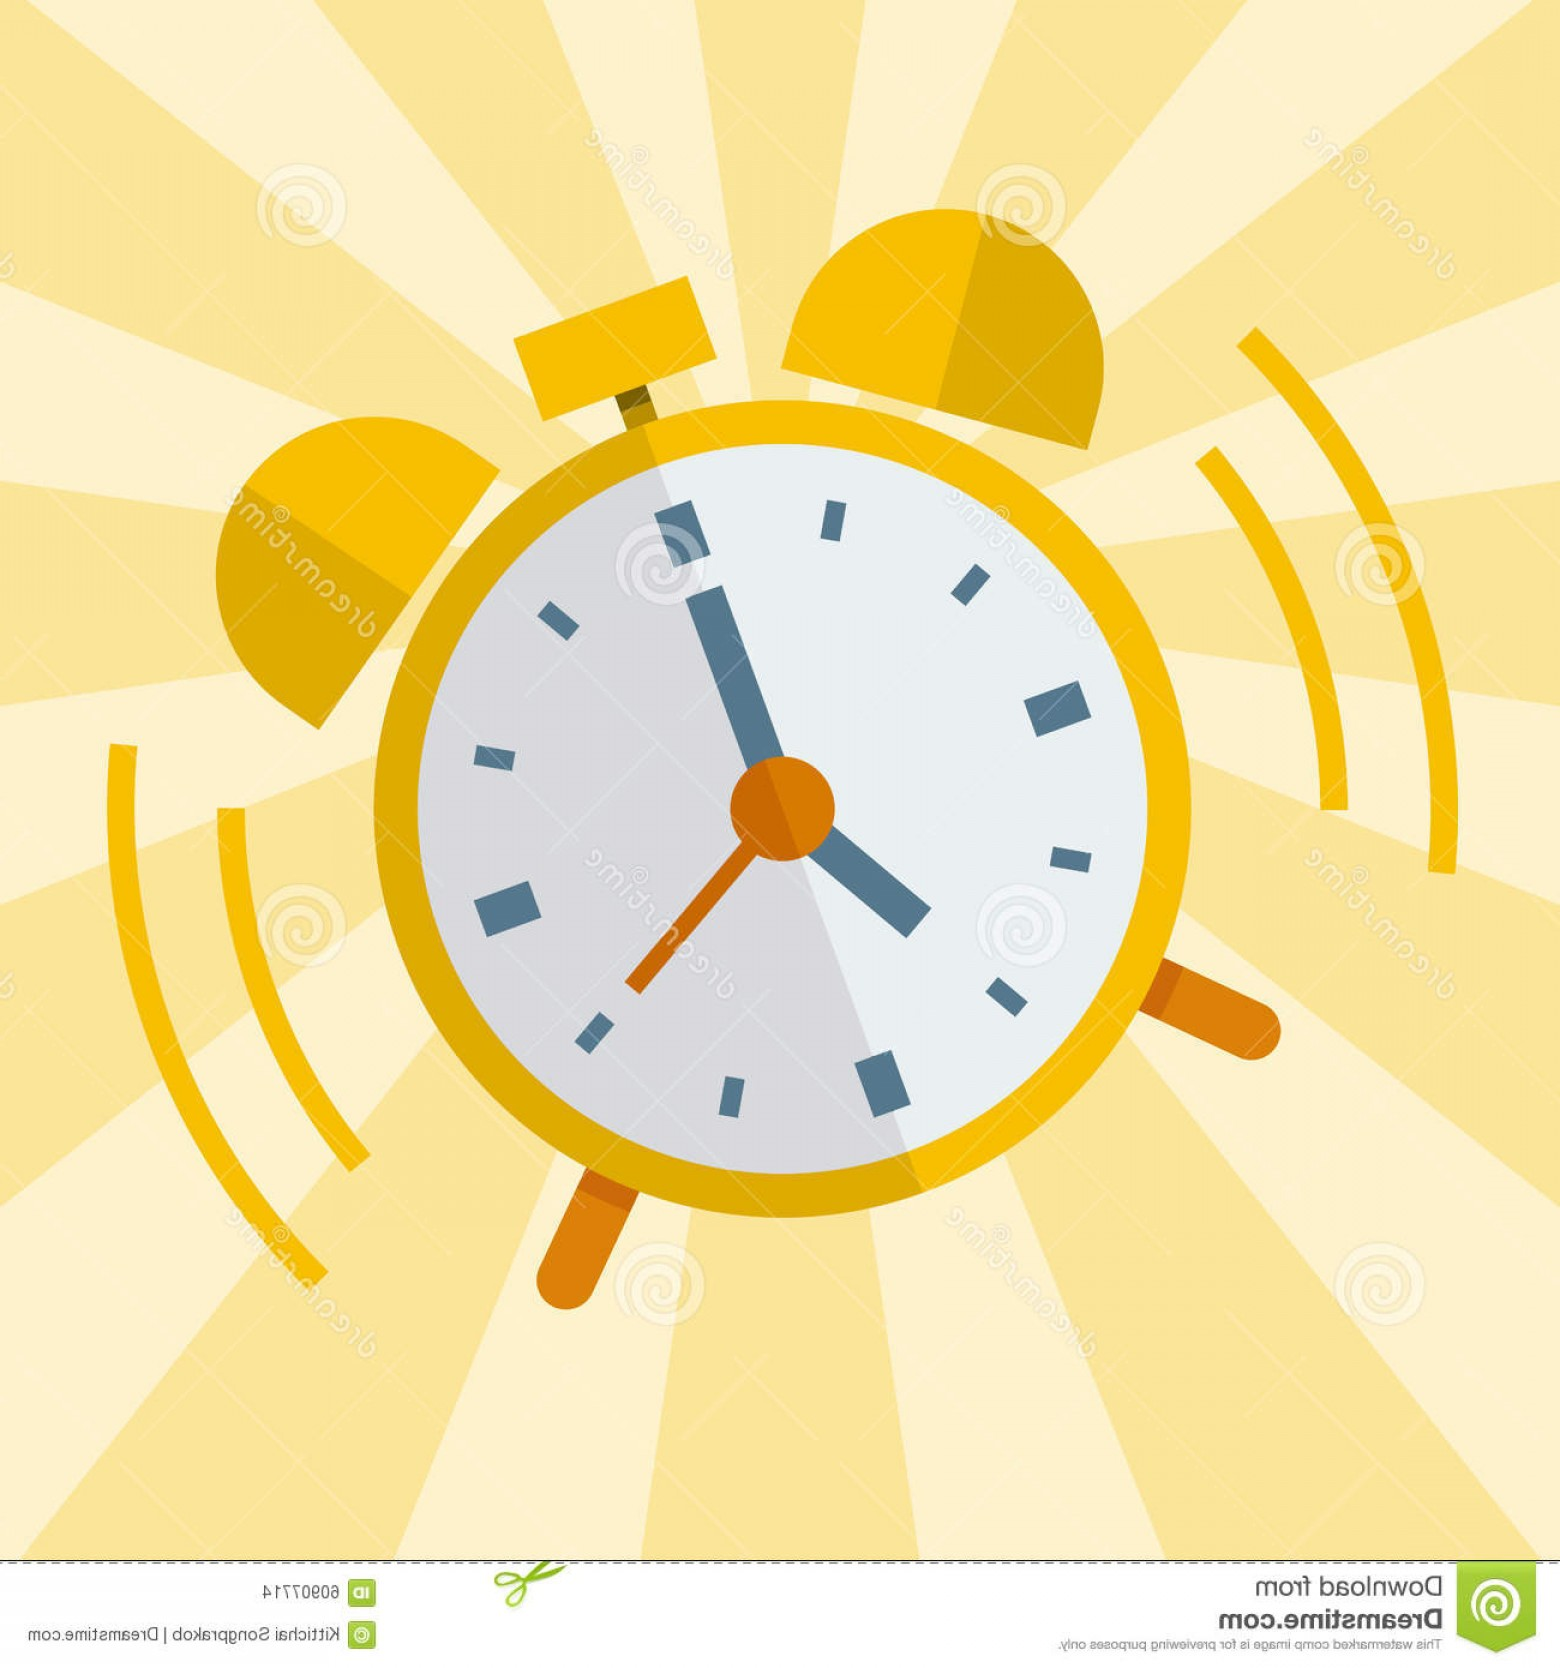 Old Floor Clock Vector: Stock Illustration Wake Up Alarm Clock Vector Flat Design Image